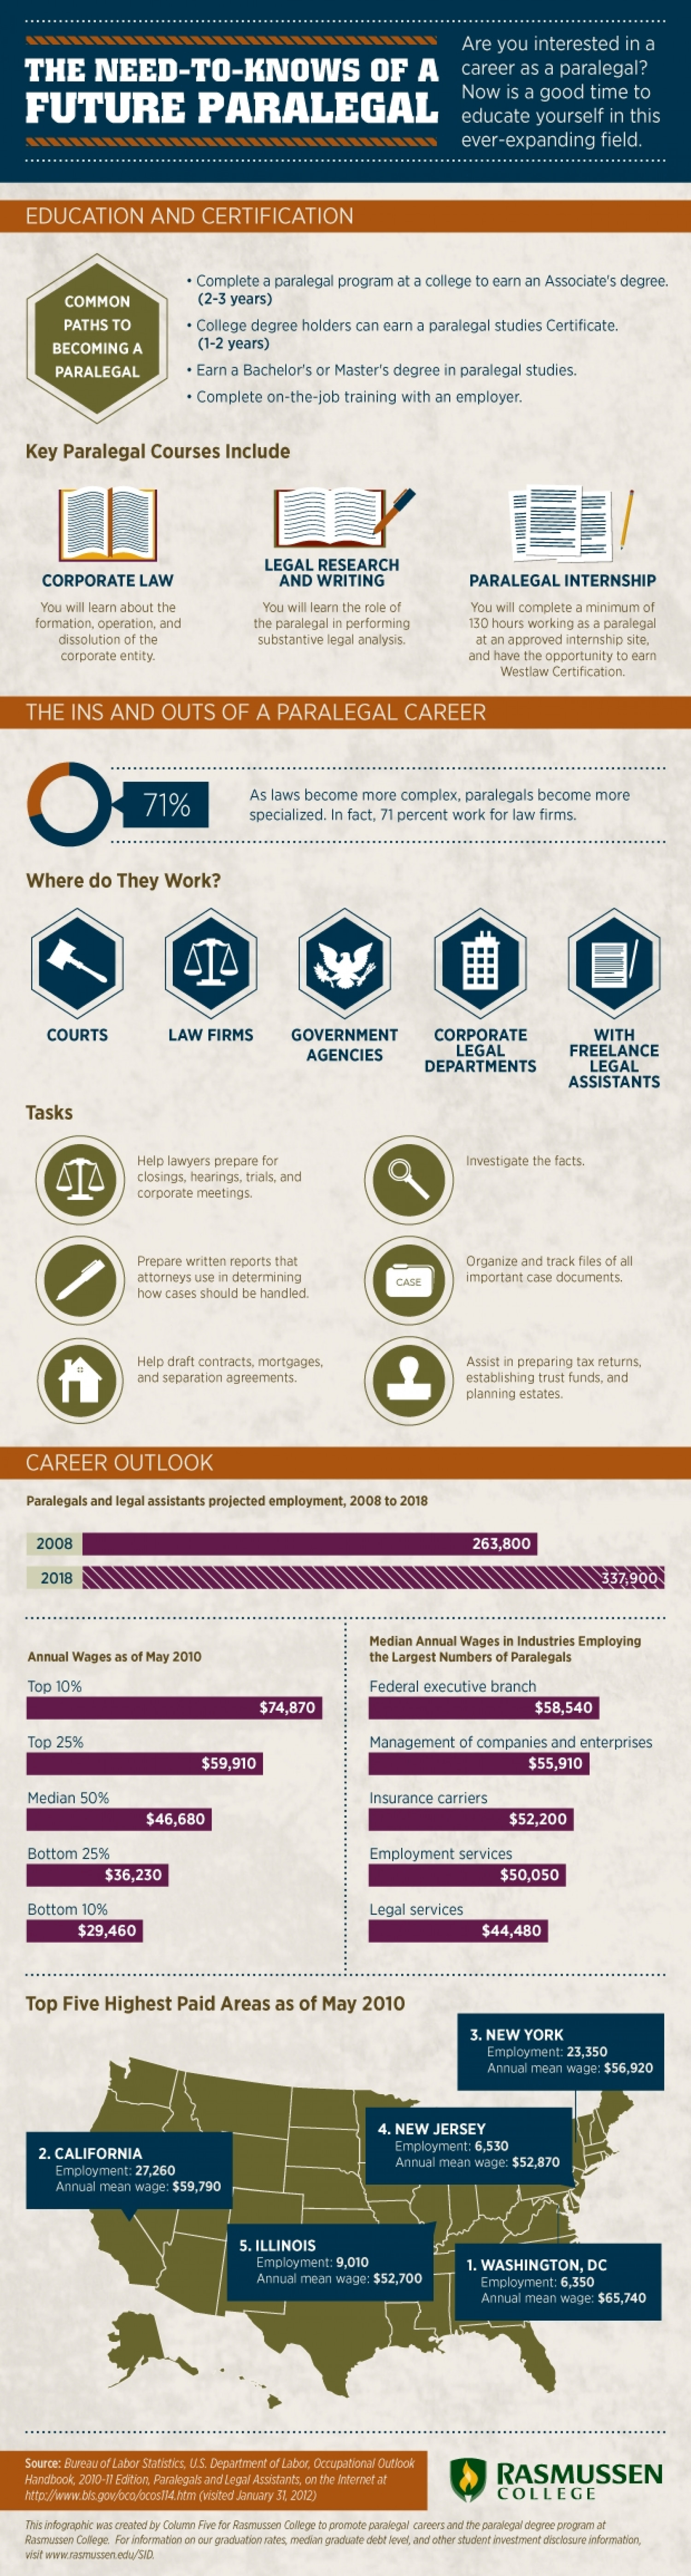 The Need to Knows of a Future Paralegal Infographic